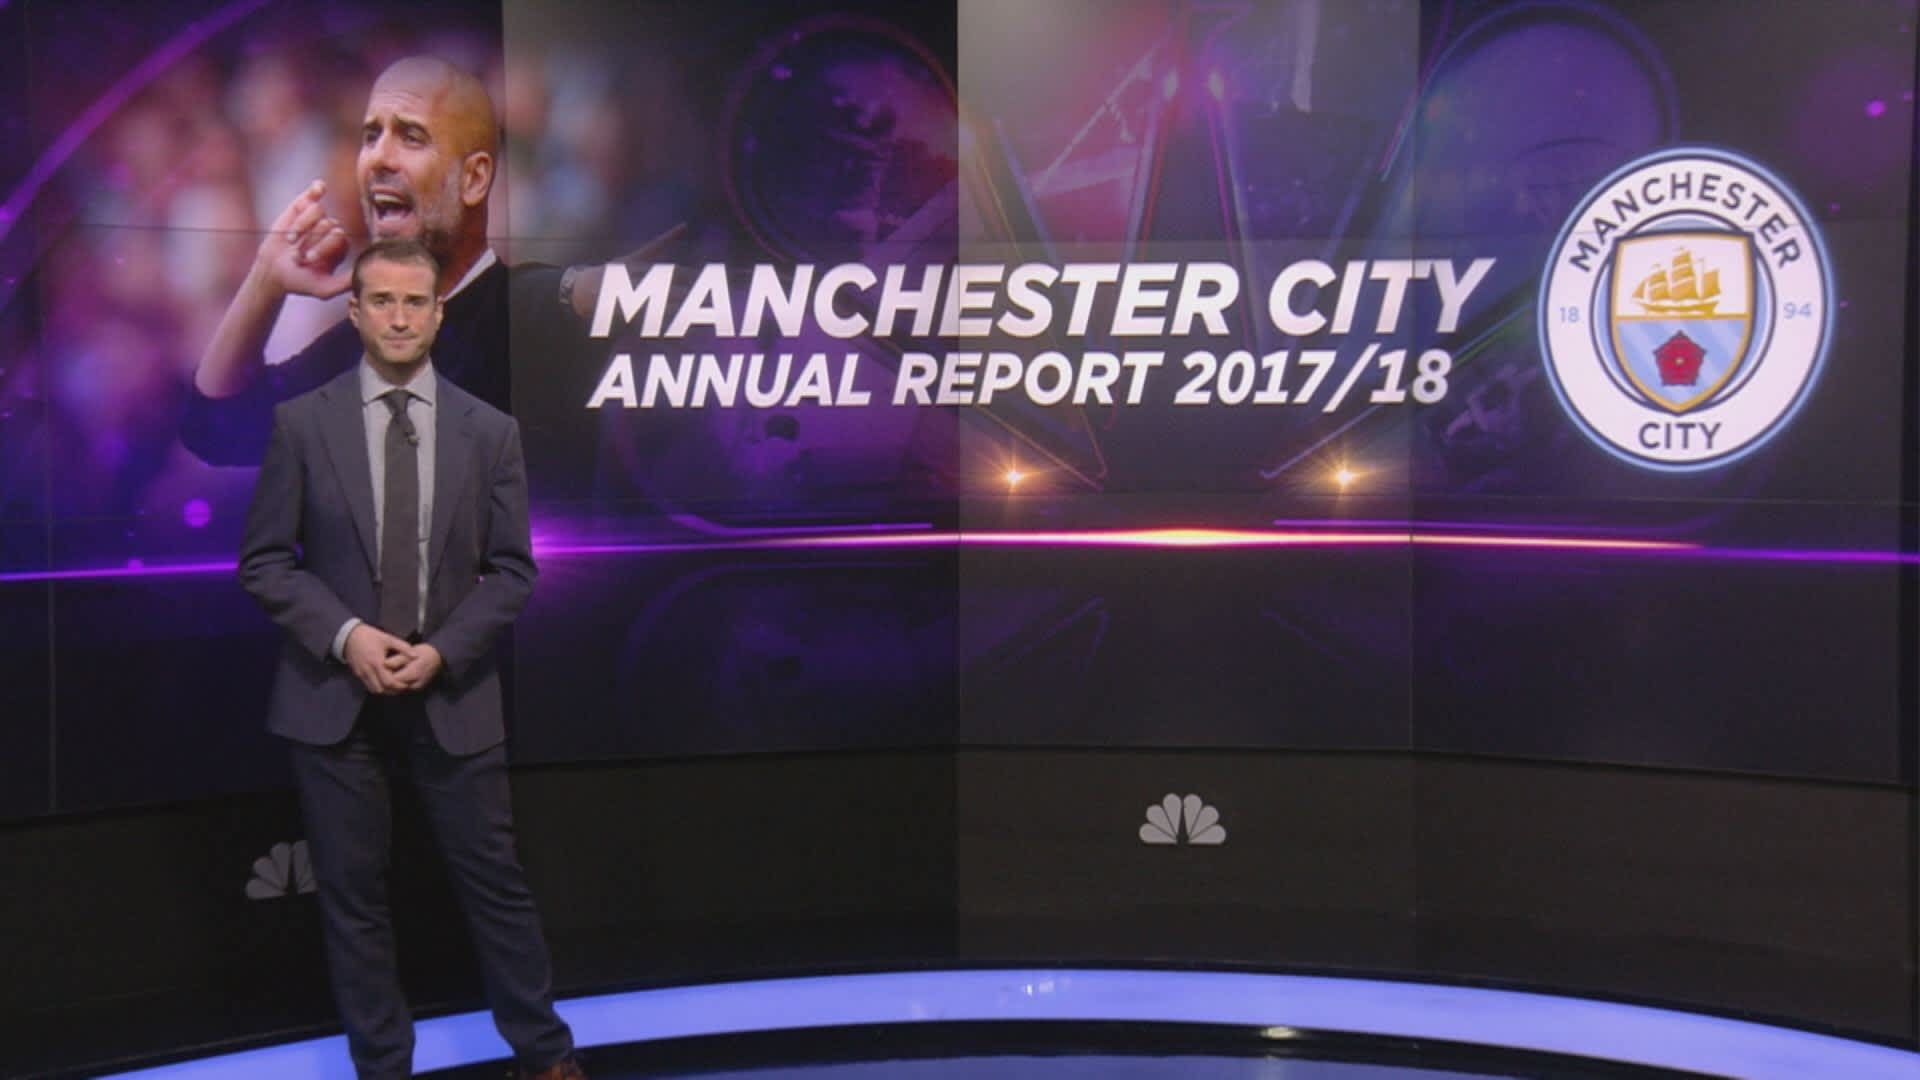 Manchester City reports £500 million revenue